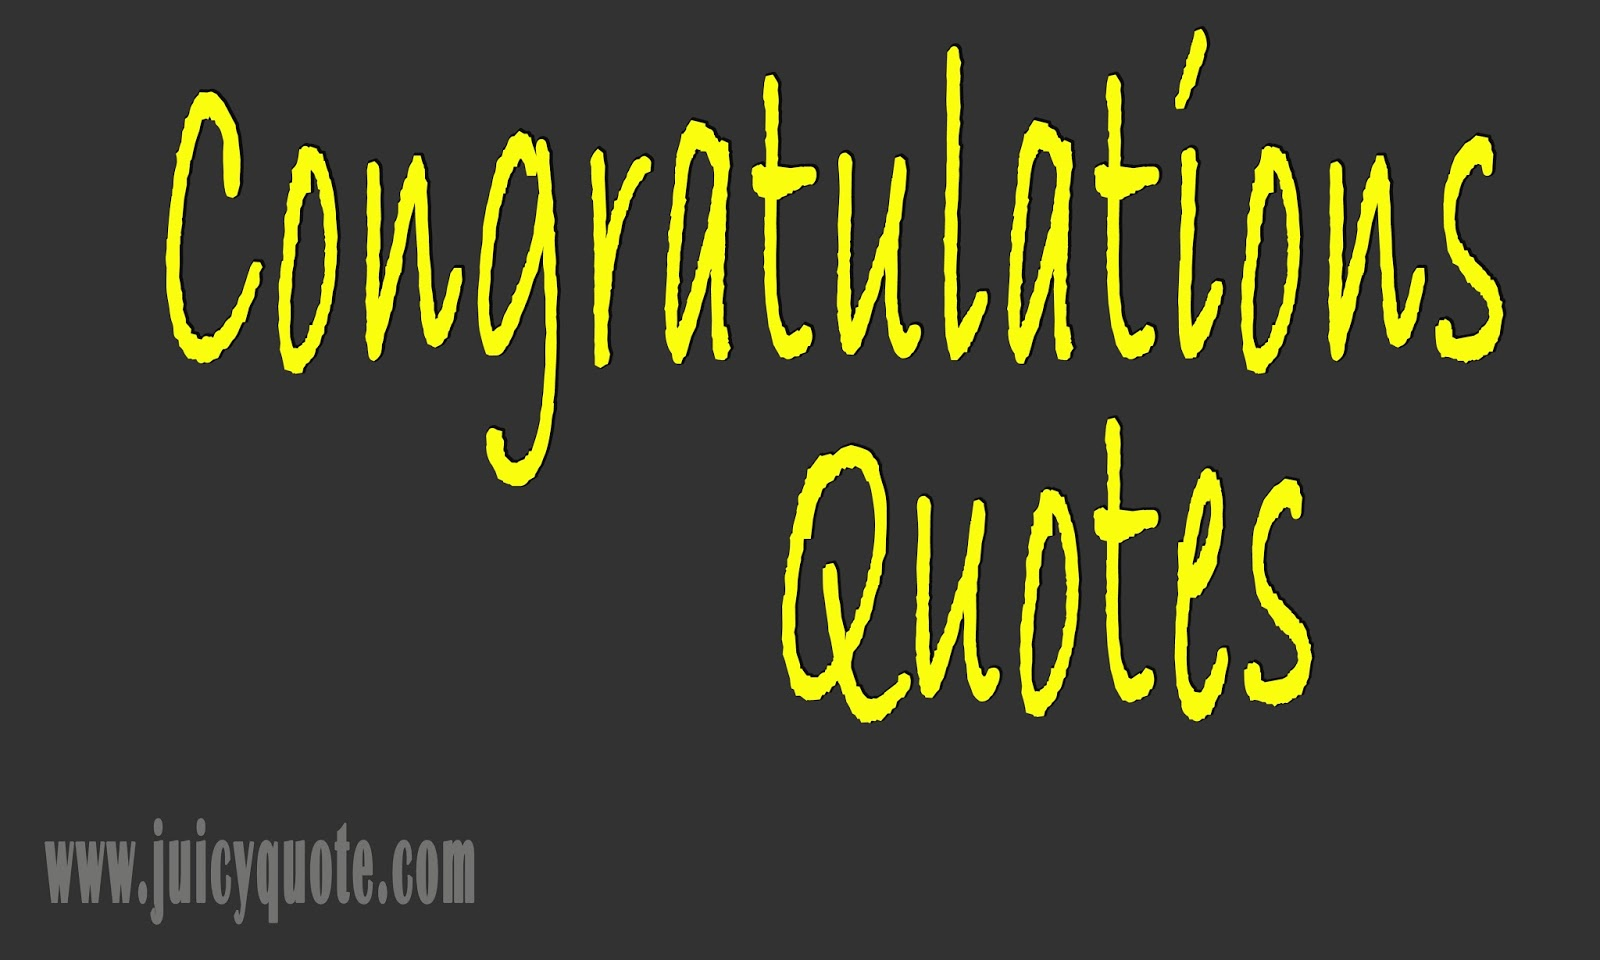 Congratulations Quotes And Sayings With Images - Juicy Quote